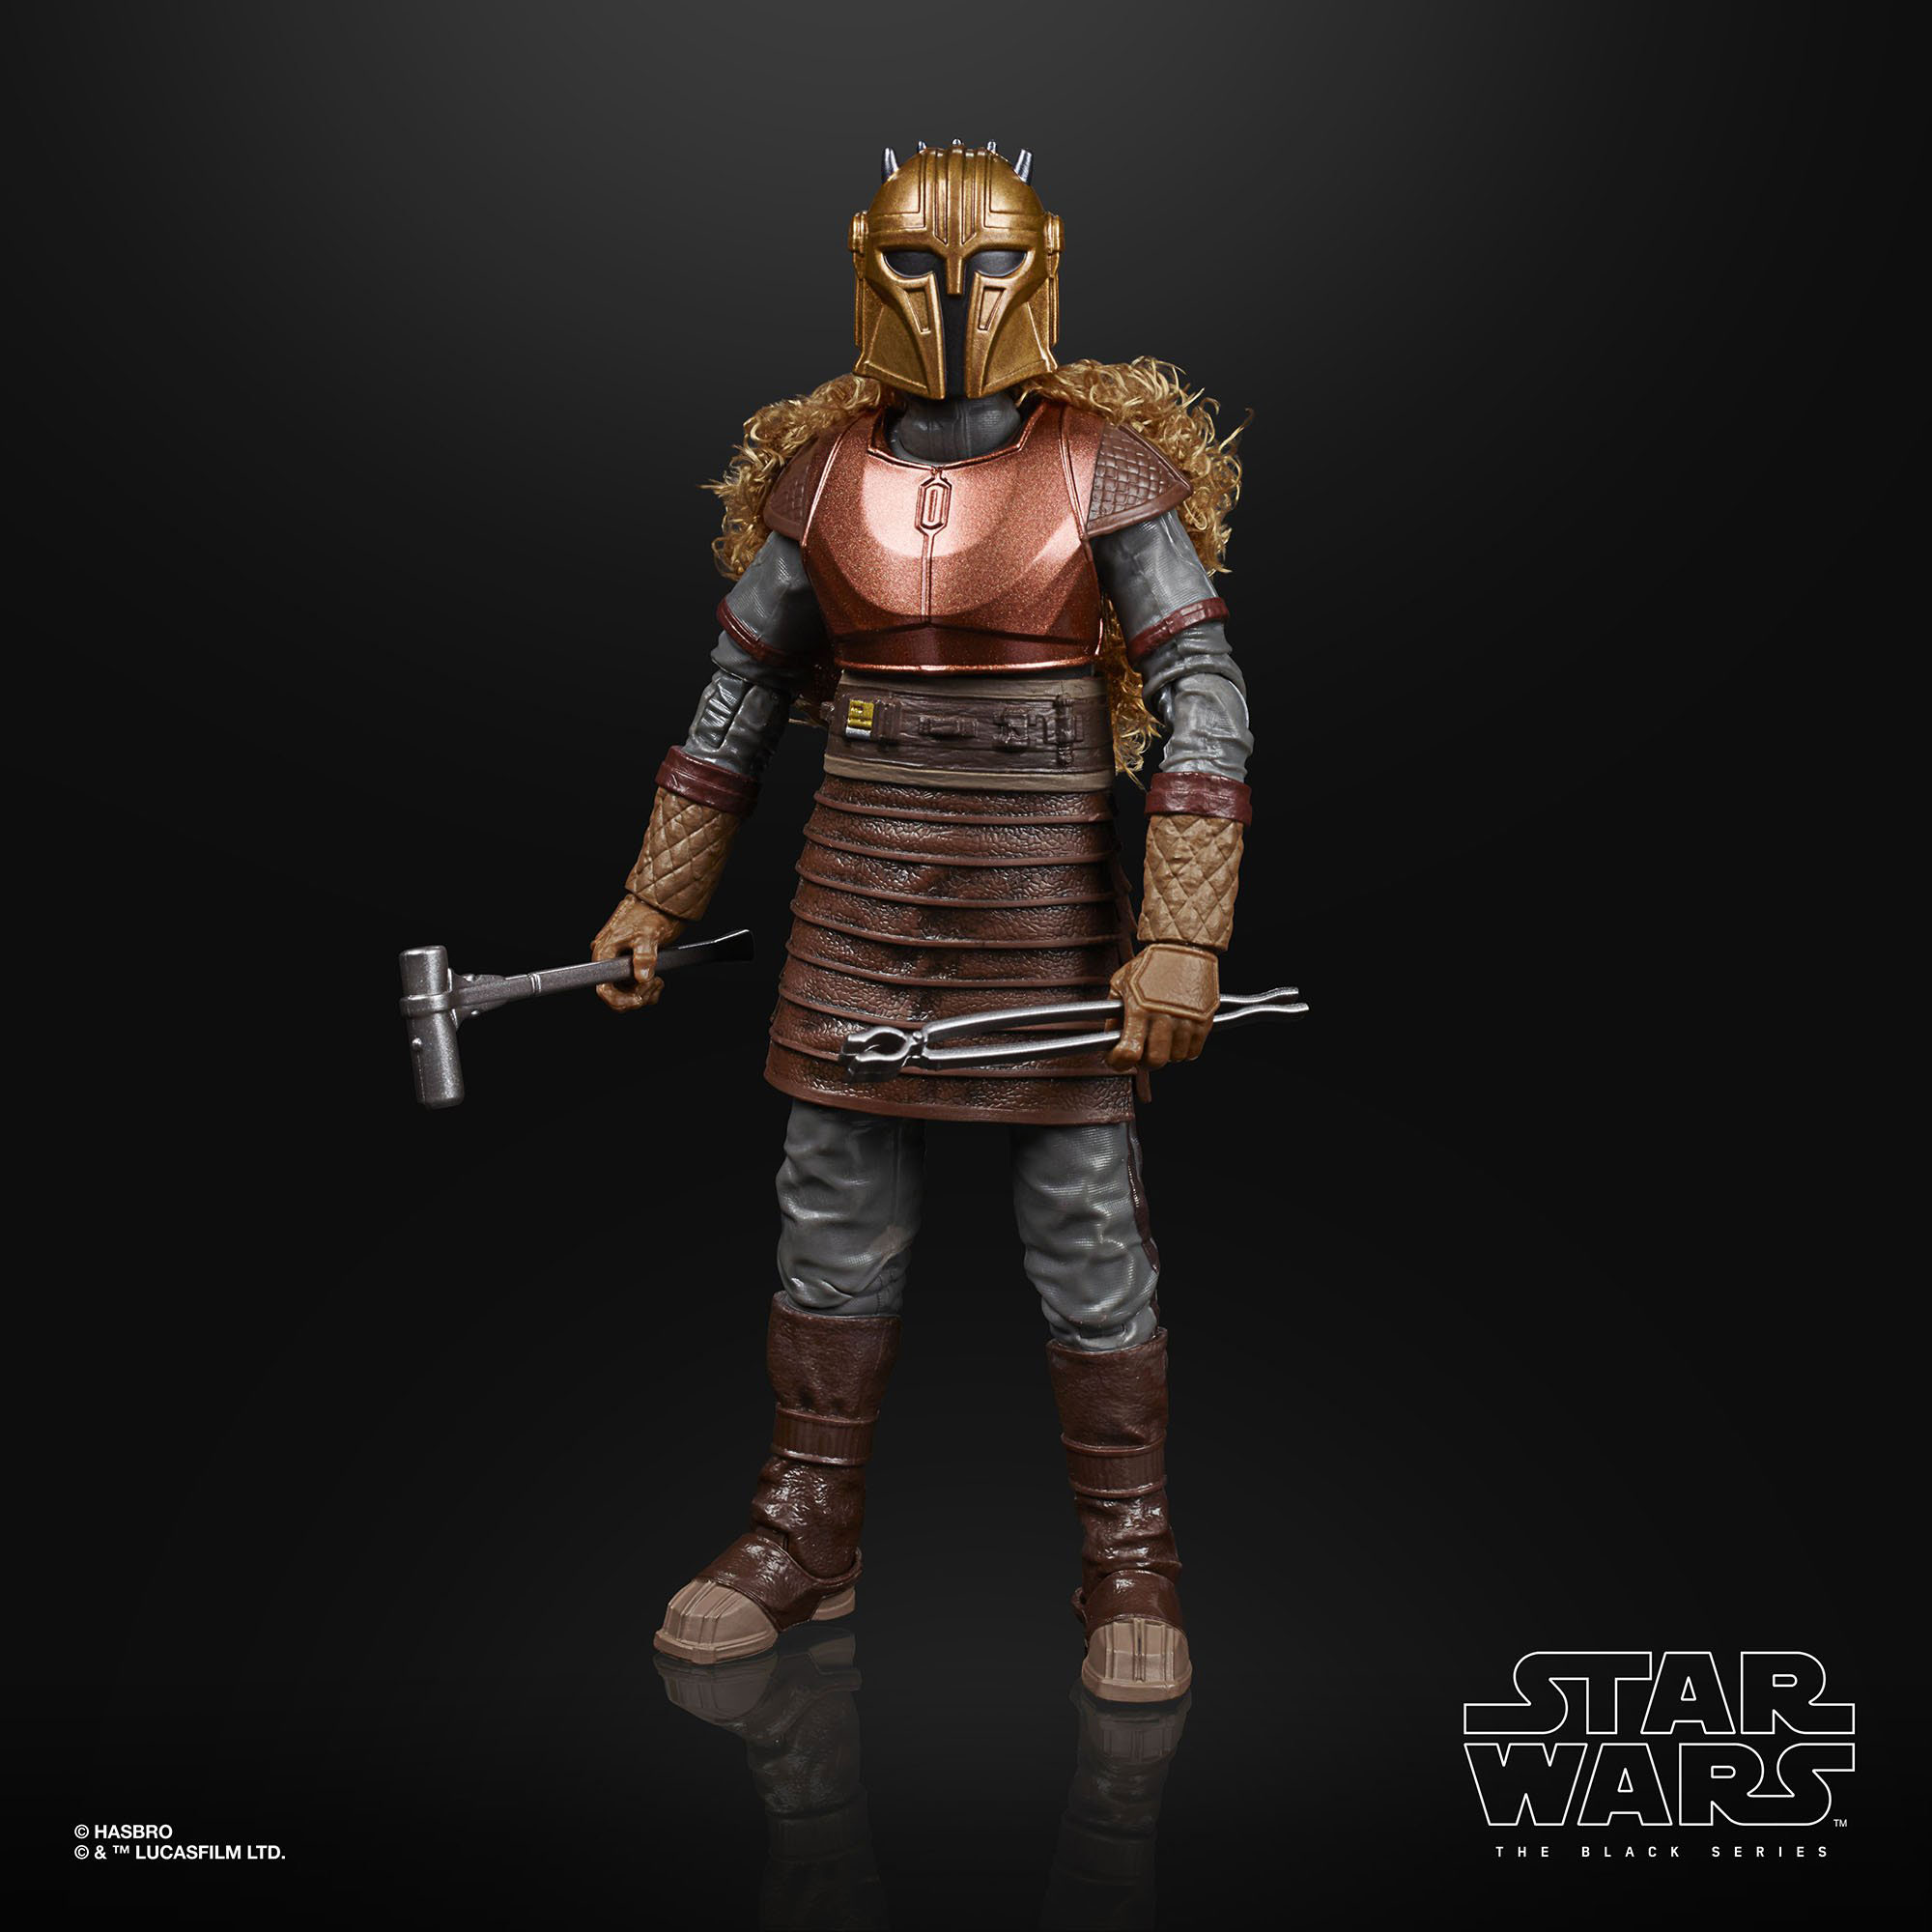 star-wars-black-series-the-armorer-mandalorian-action-figure